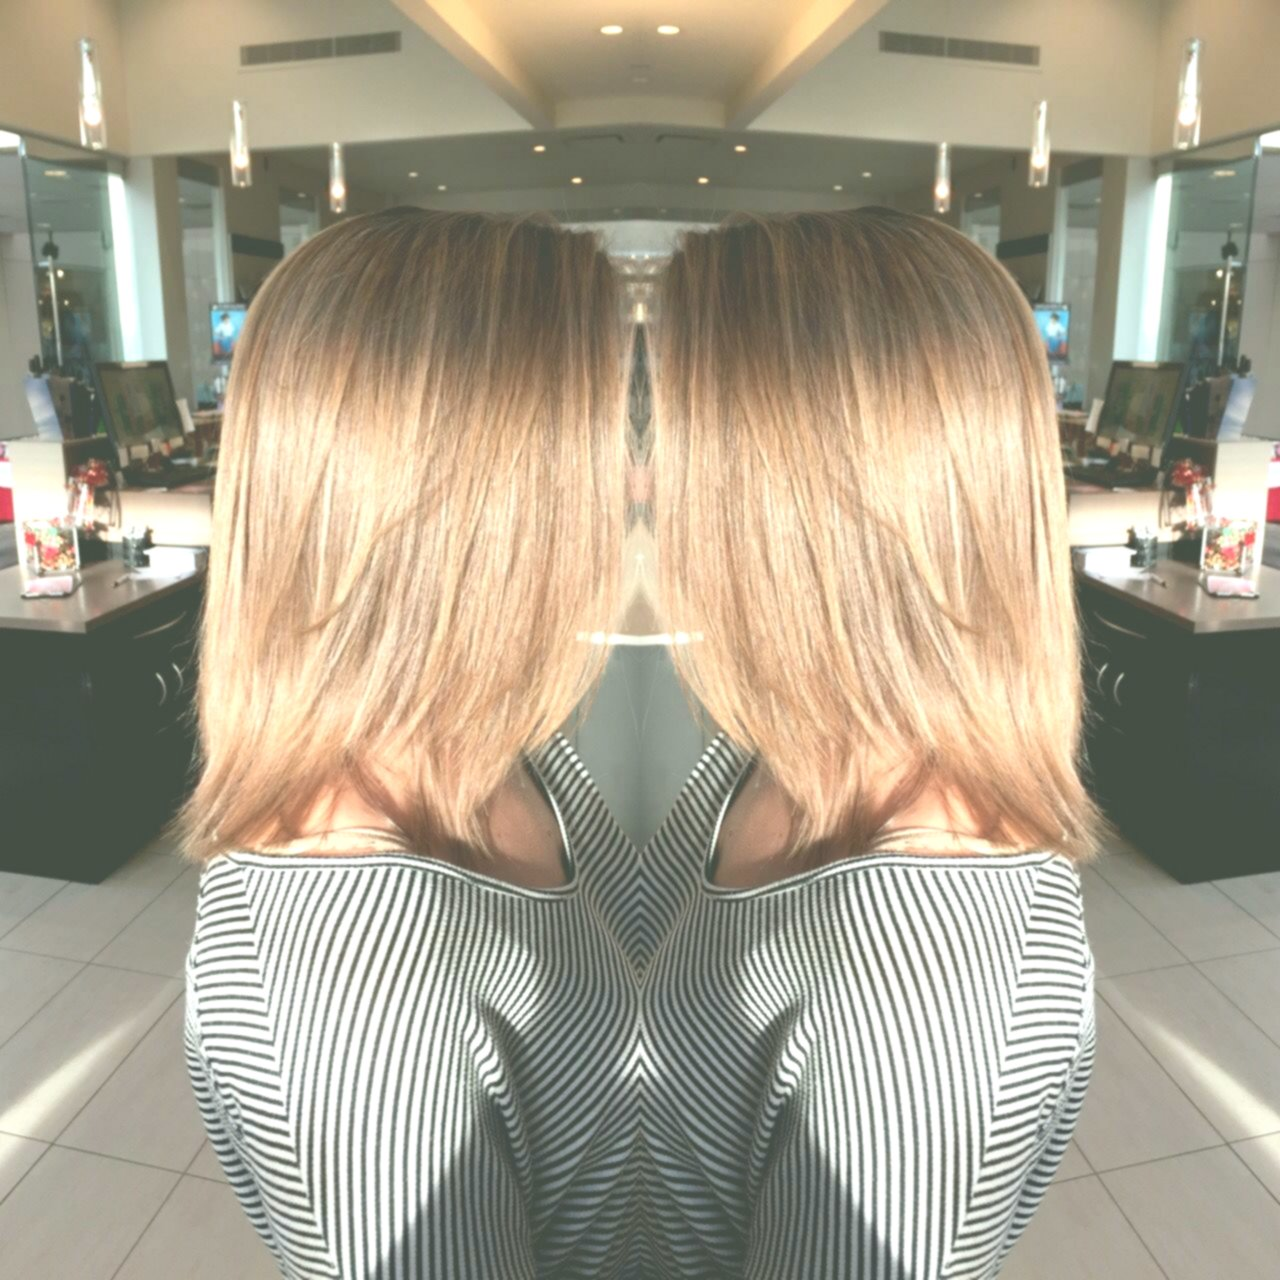 Amazing awesome Magma Hair Color Ideas - Breathtaking Magma Hair Color Models